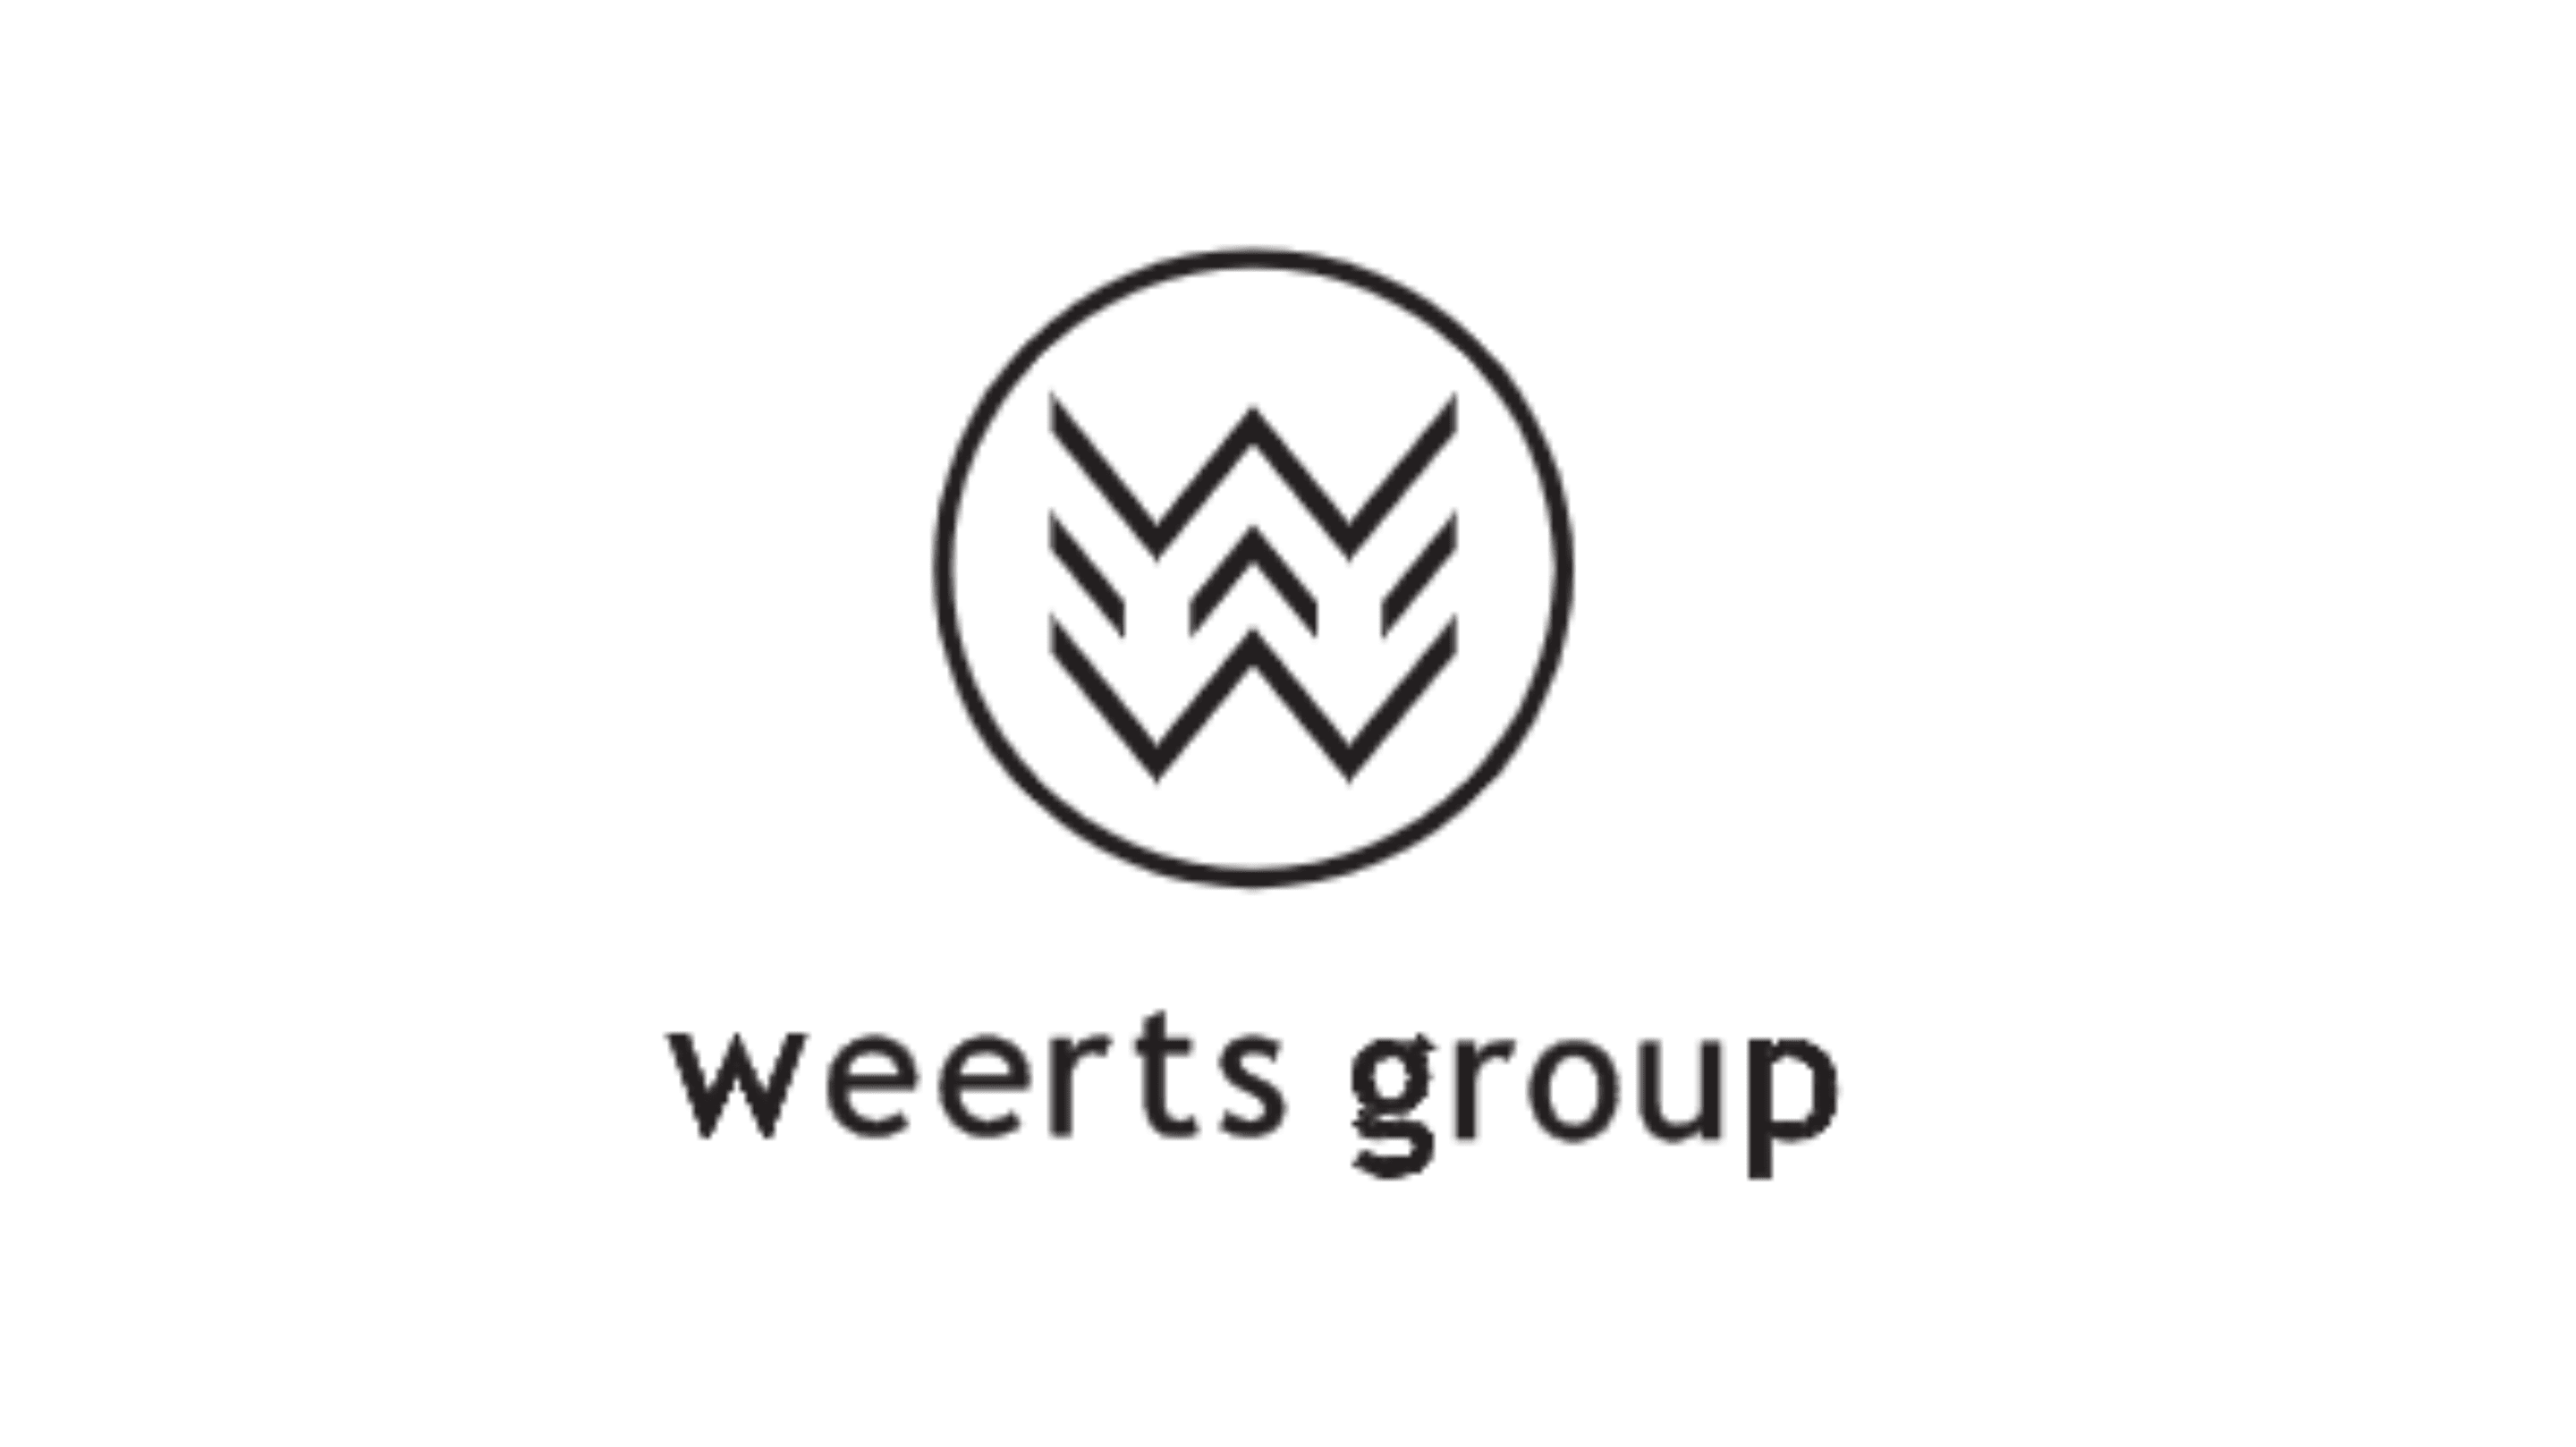 Weerts Group logo